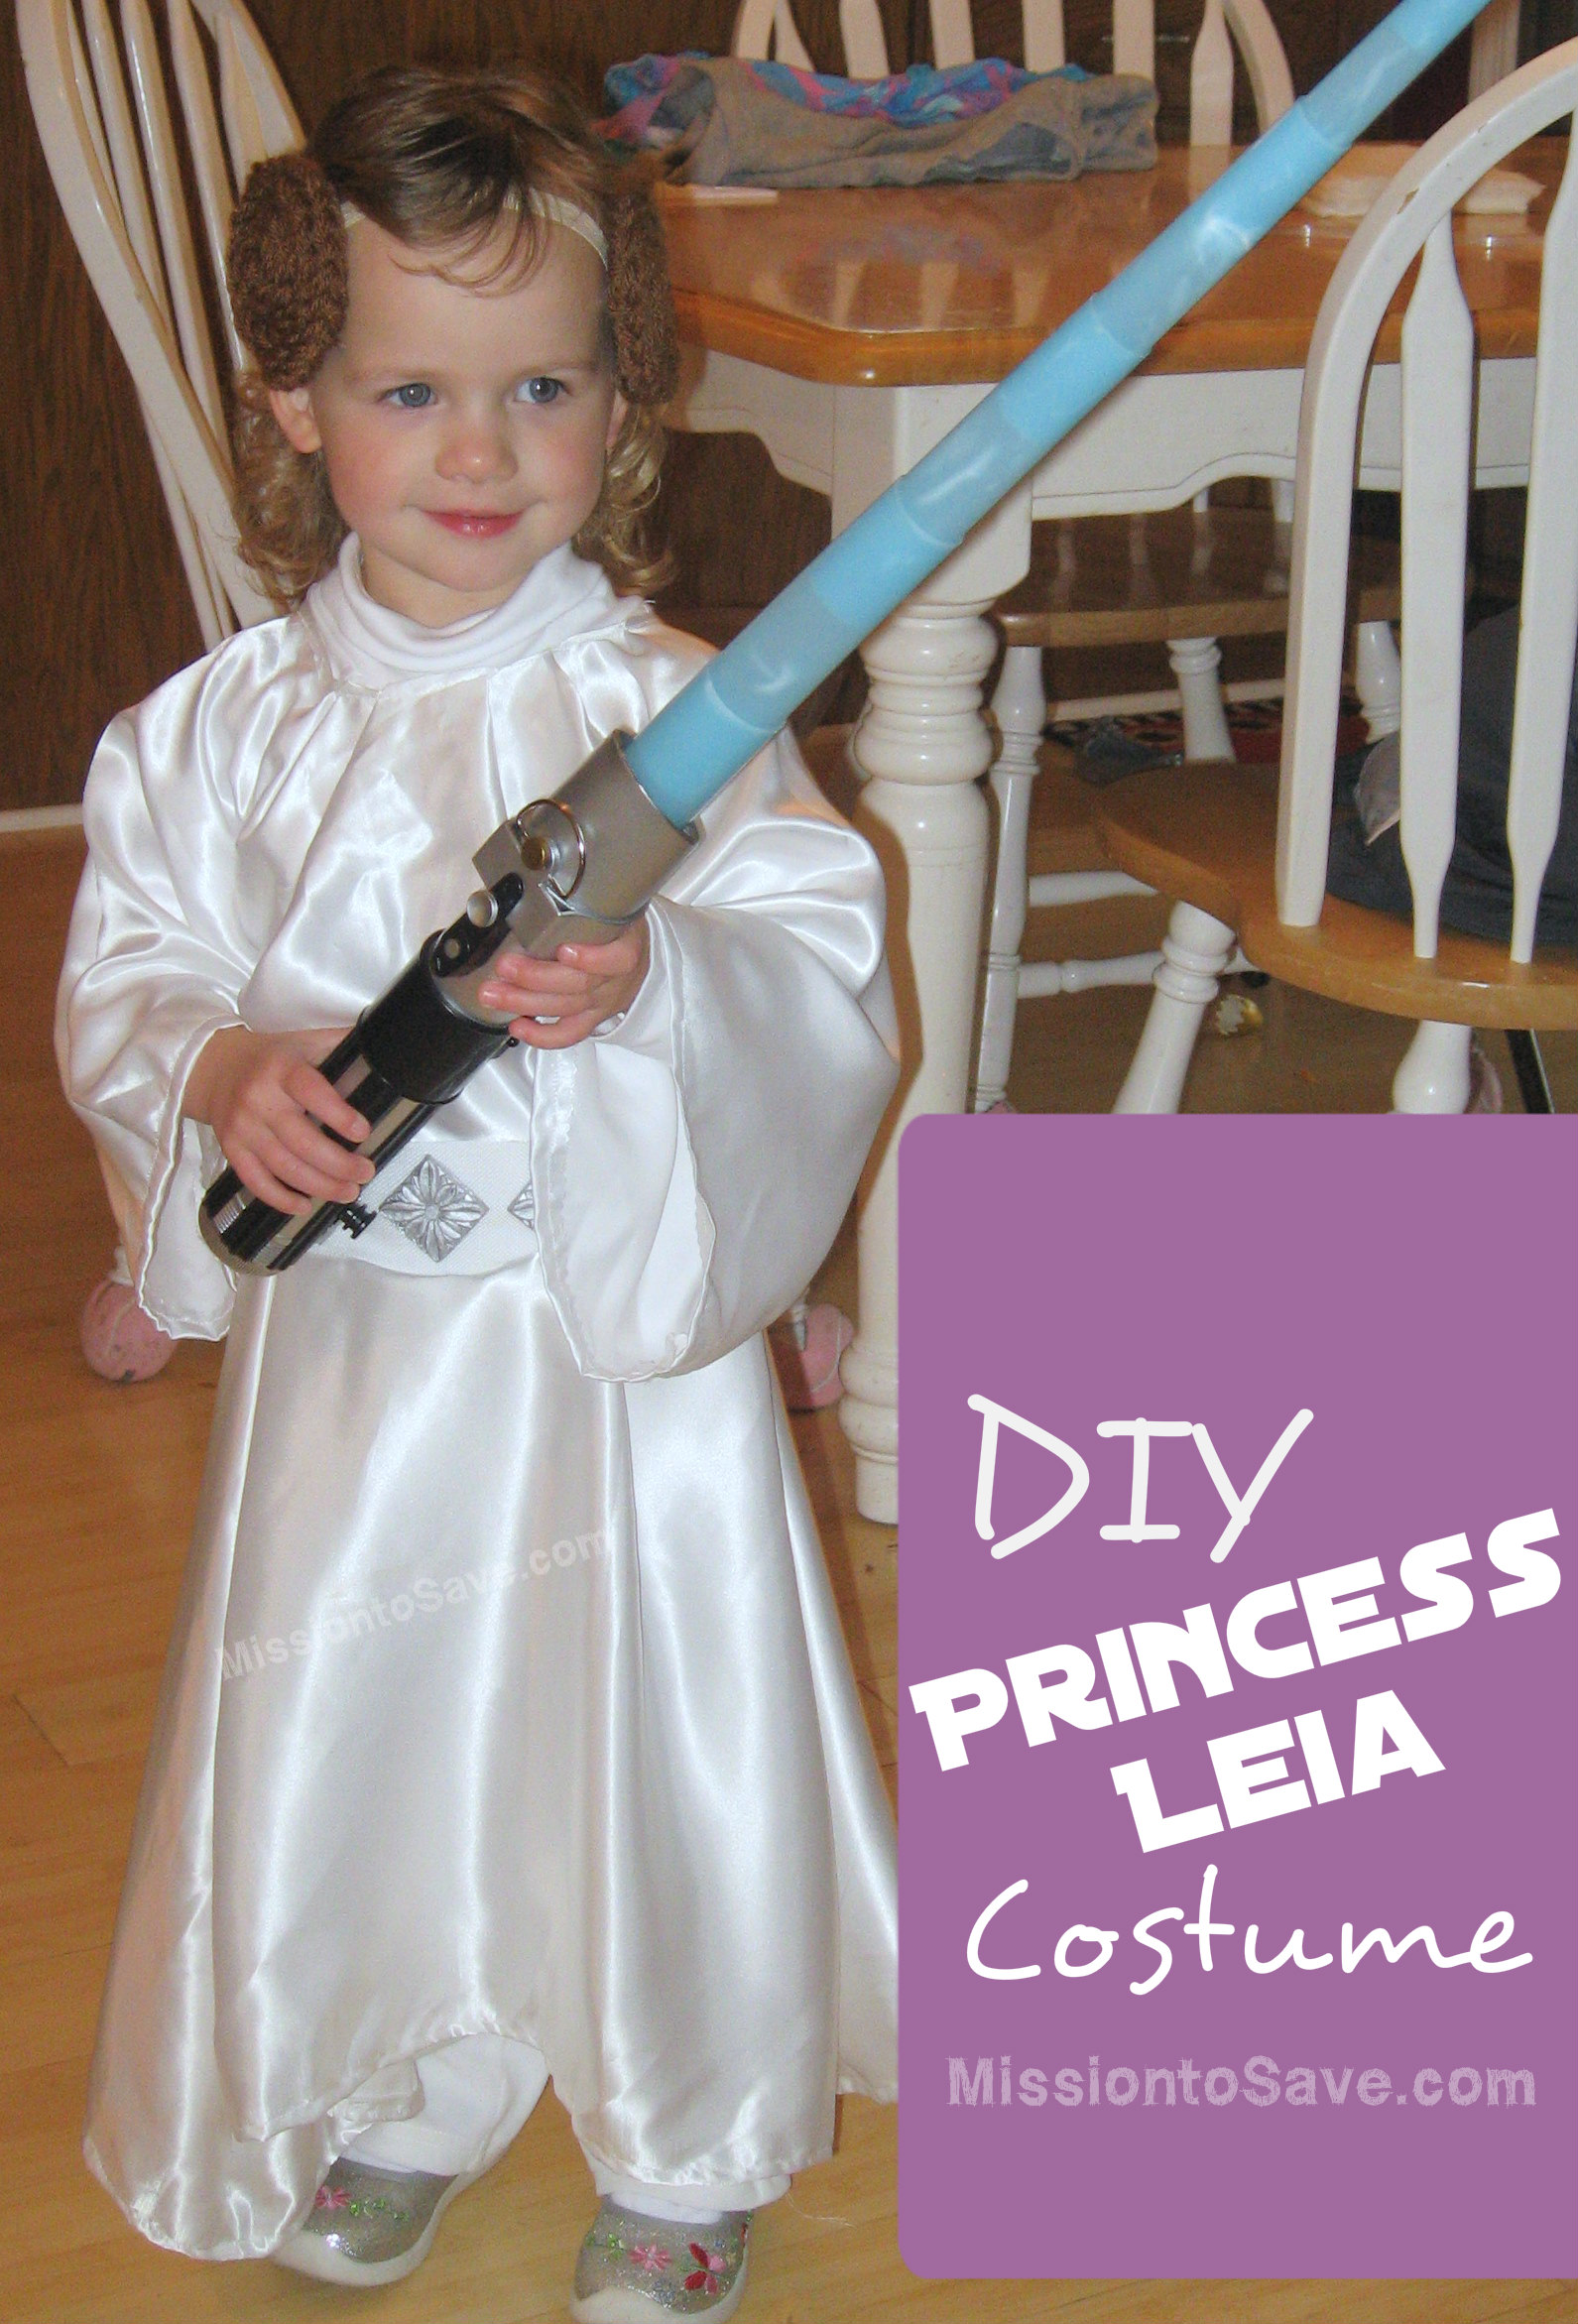 Diy Star Wars Costumes Jedi And Princess Leia Mission To Save